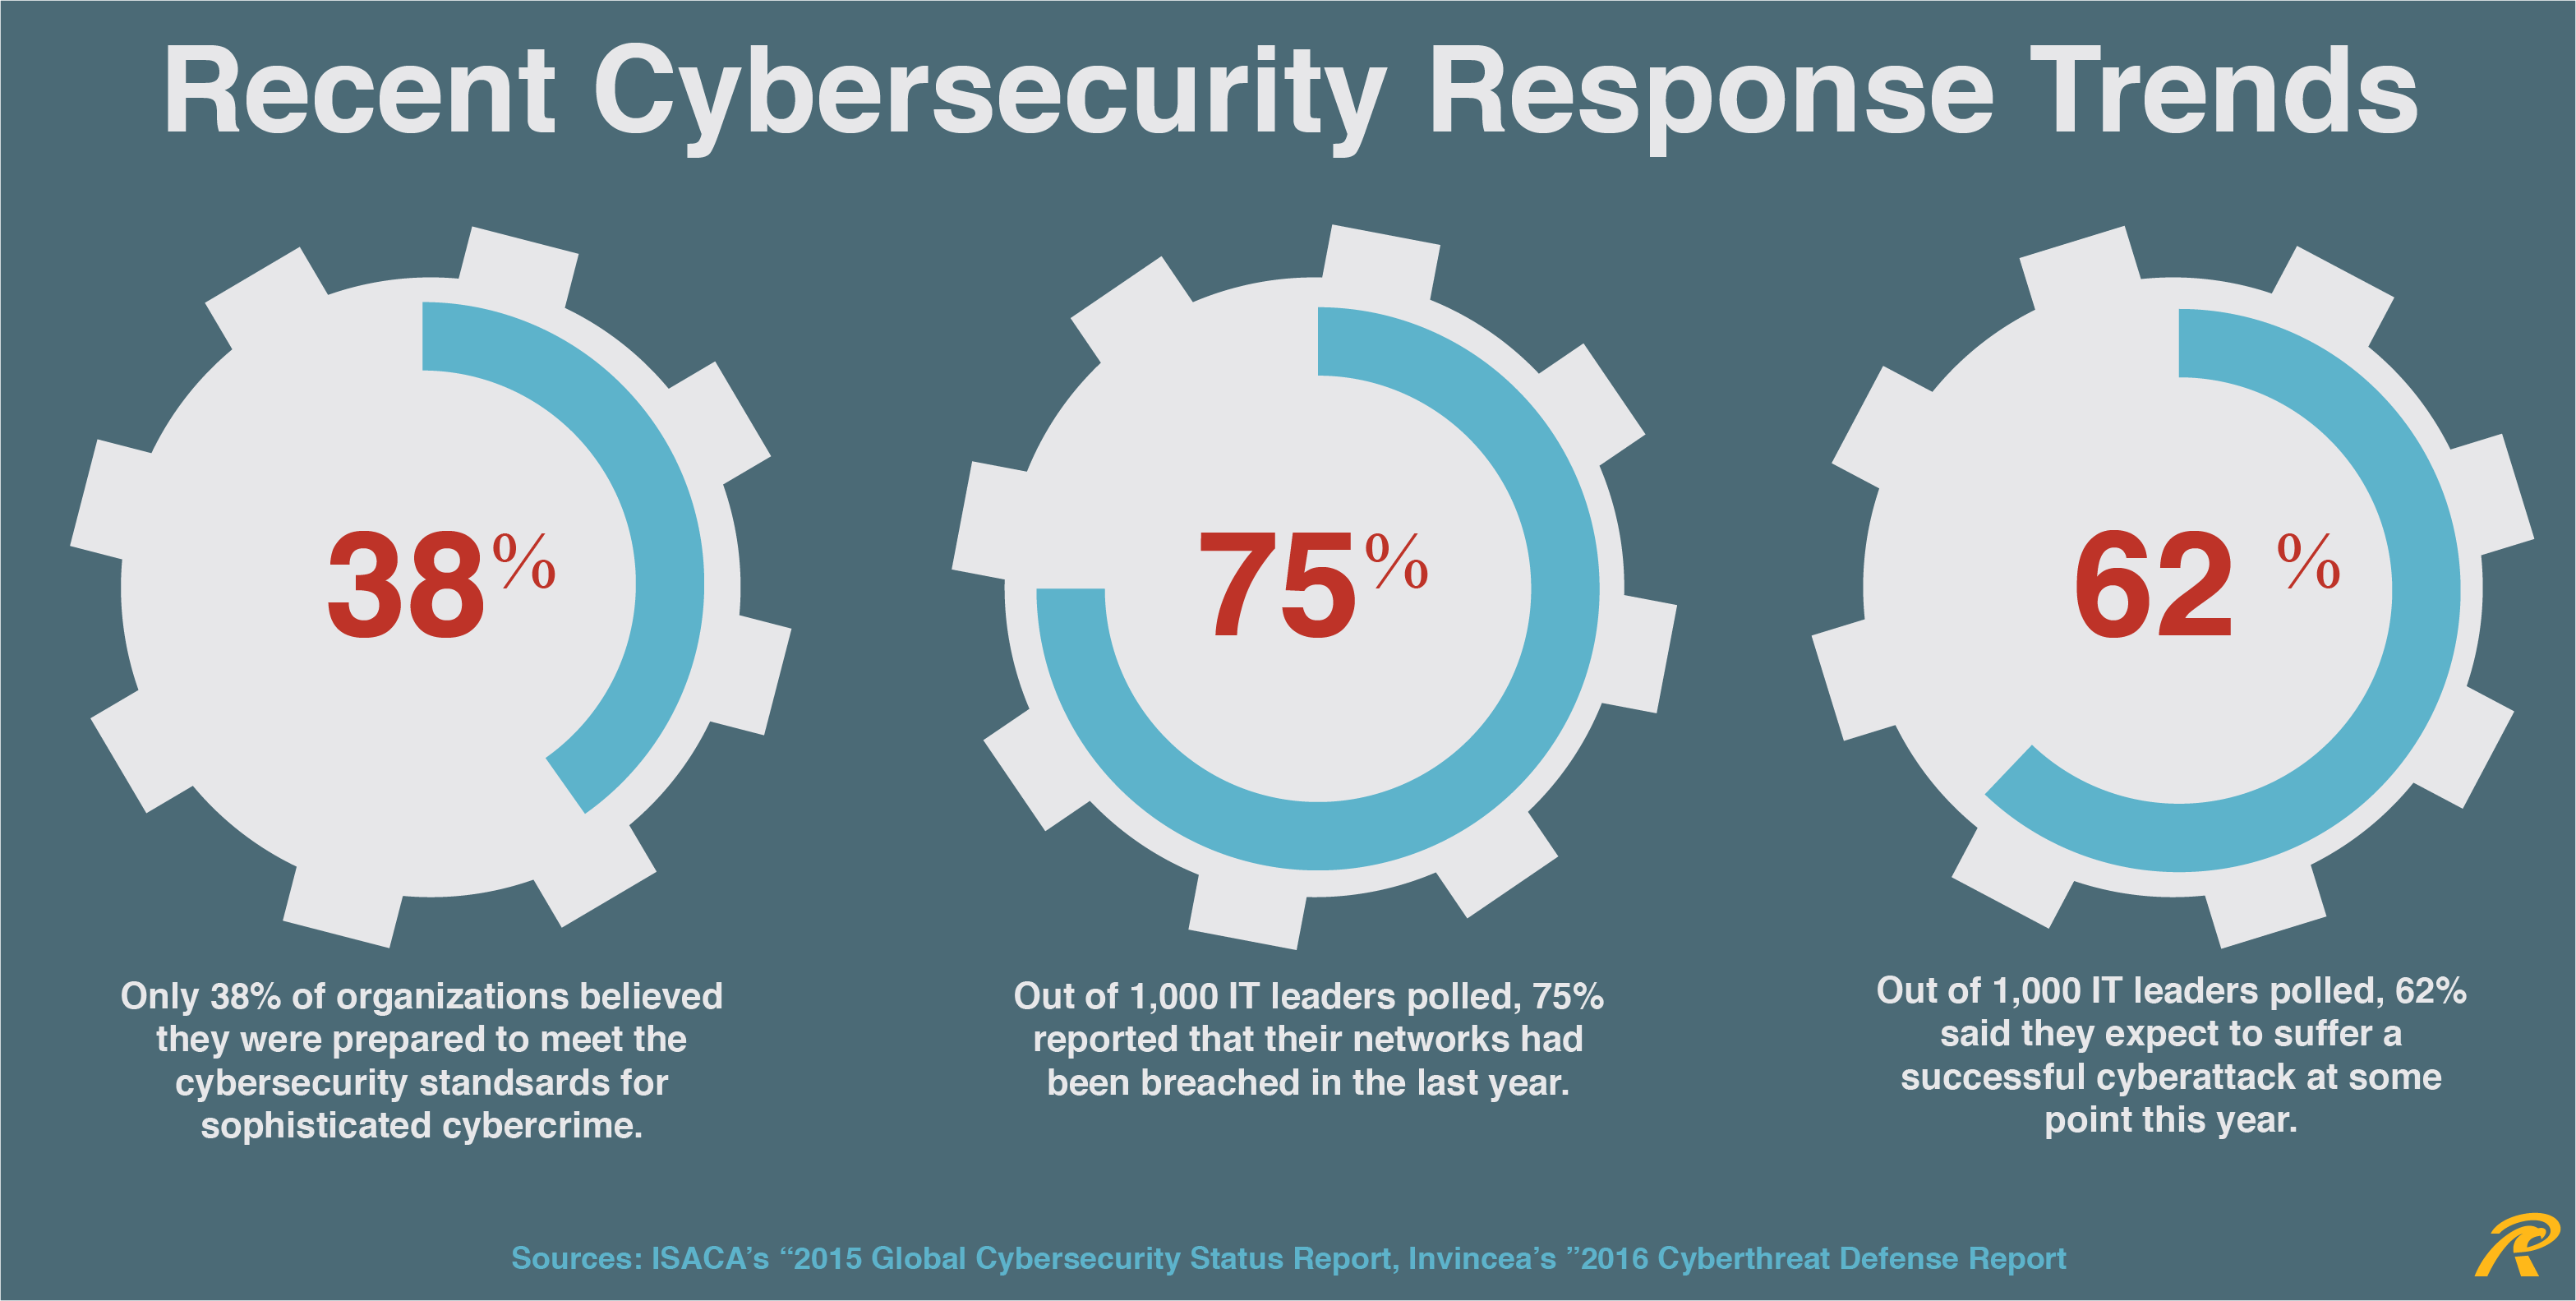 Recent Cybersecurity Response Trends